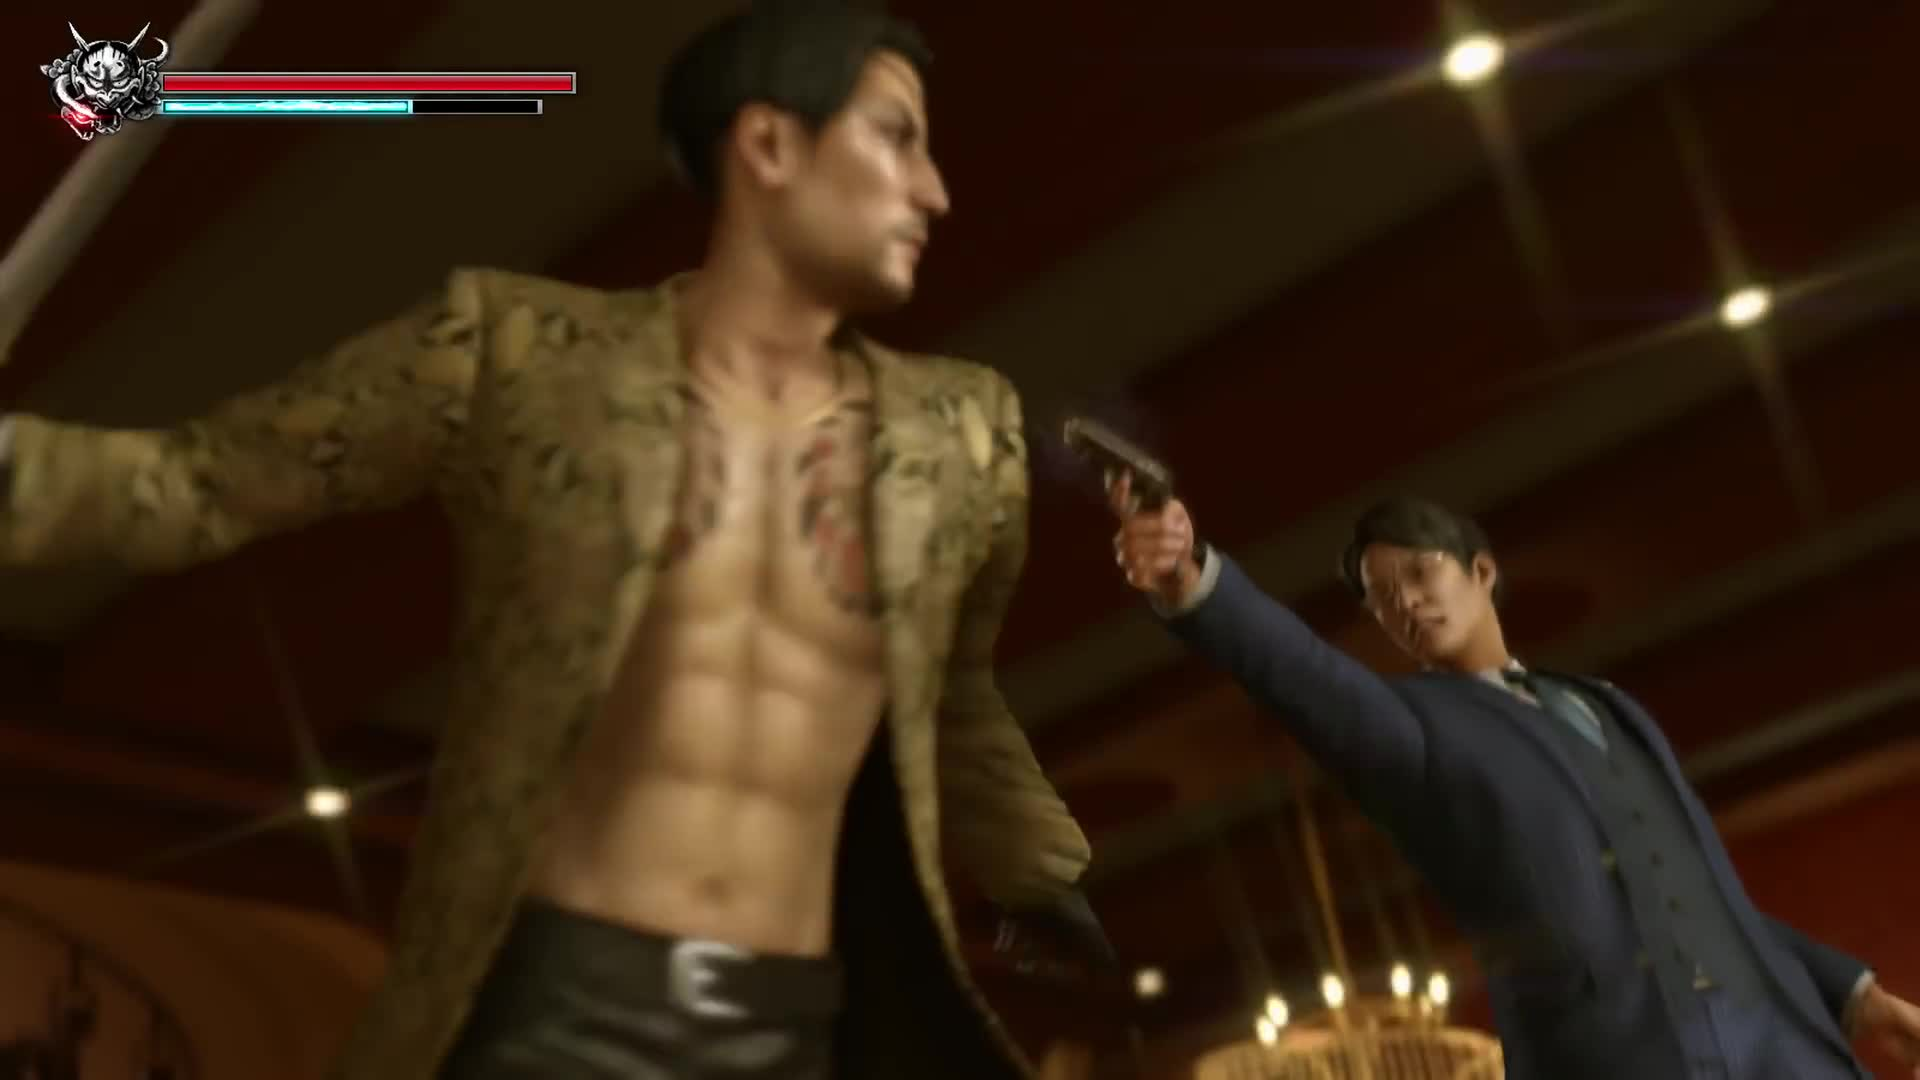 Yakuza Kiwami 2 Majima Gifs Search Search Share On Homdor